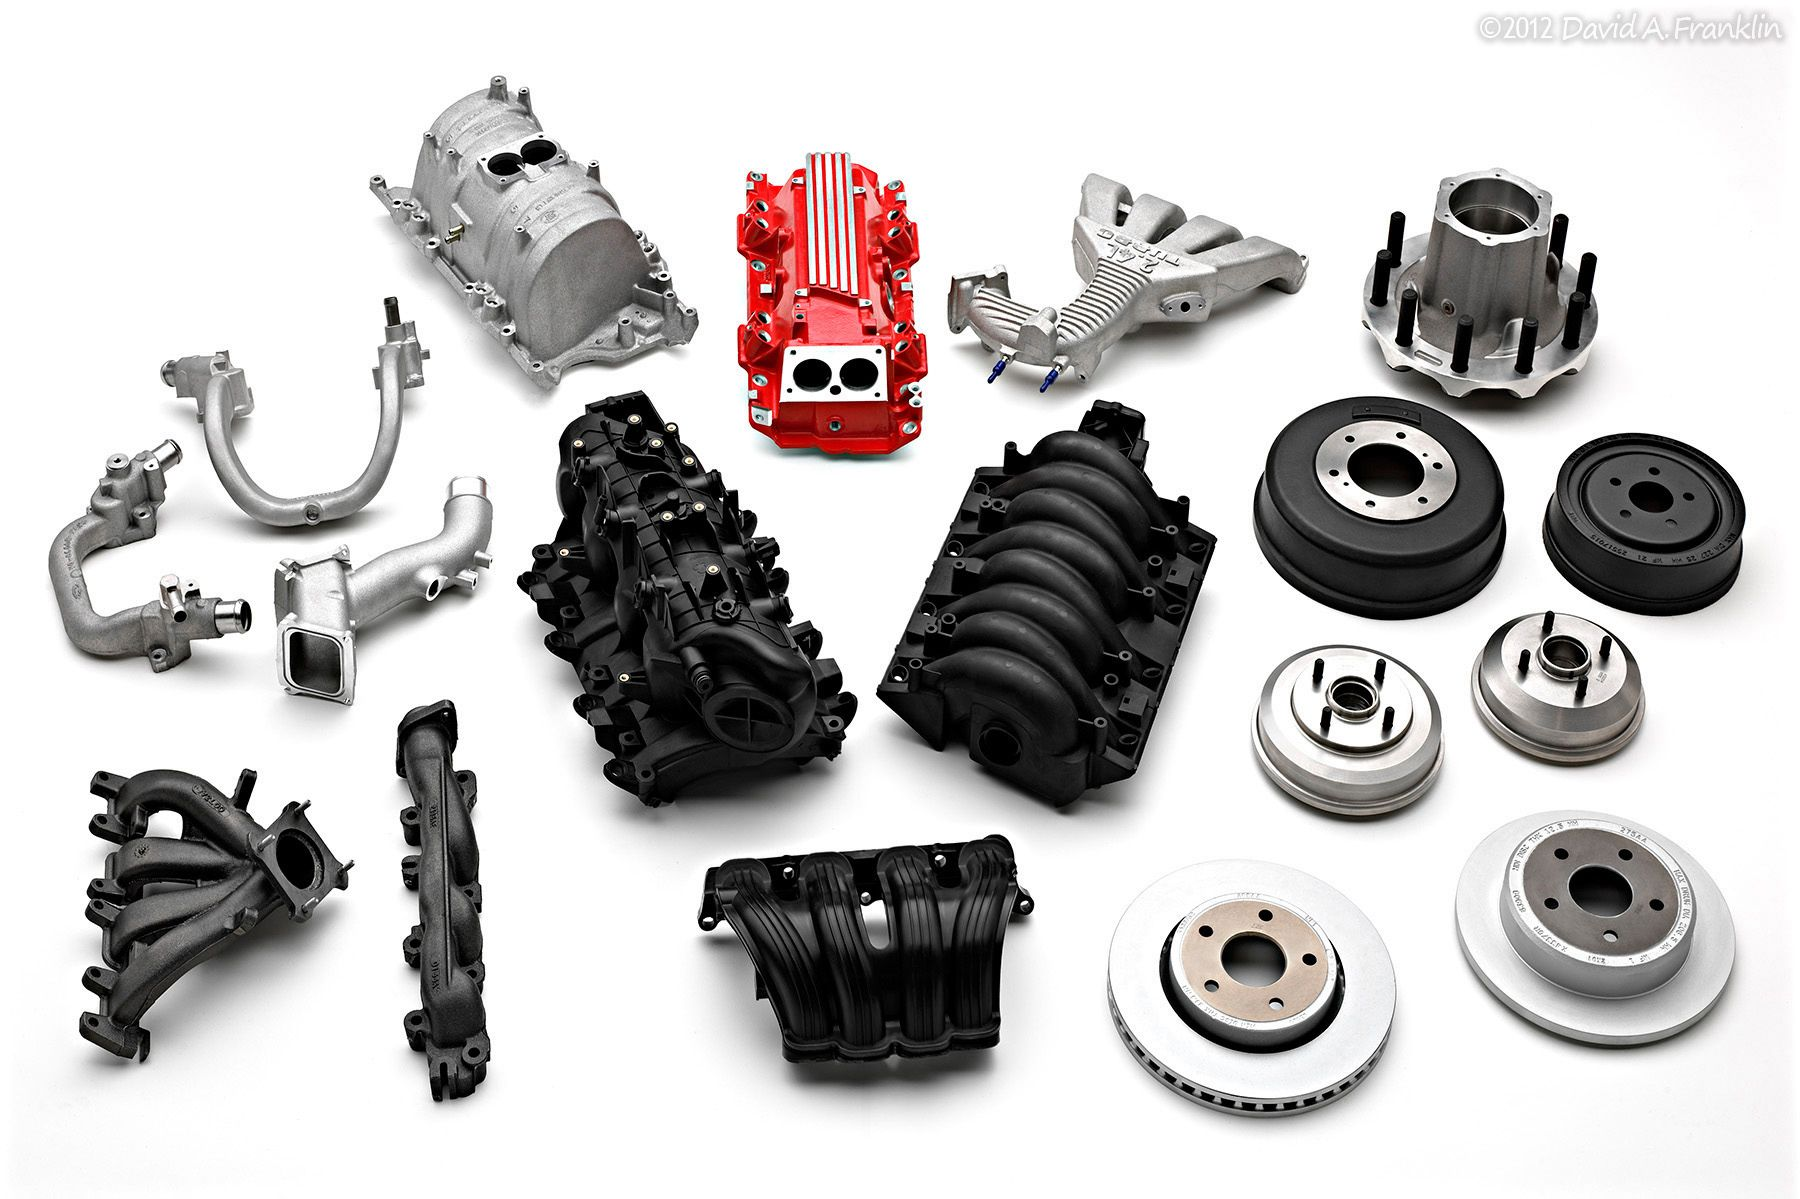 LargeGroup_MultipleAutoParts_HayesLemmerz_Catalog